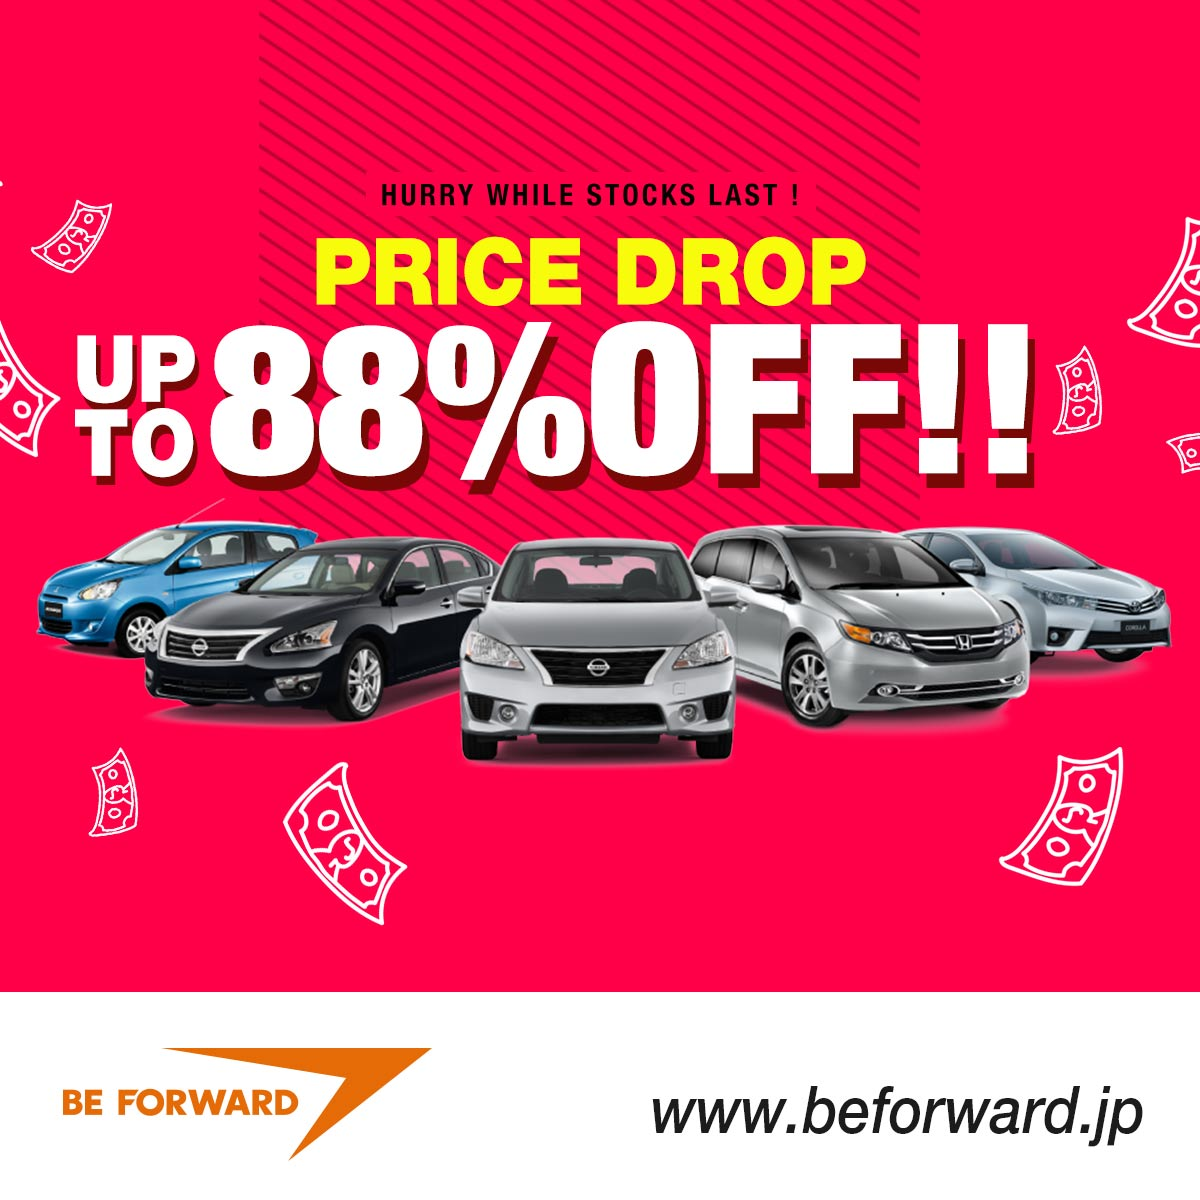 Price Drop Sale - Up to 88% Off Japanese Used Cars